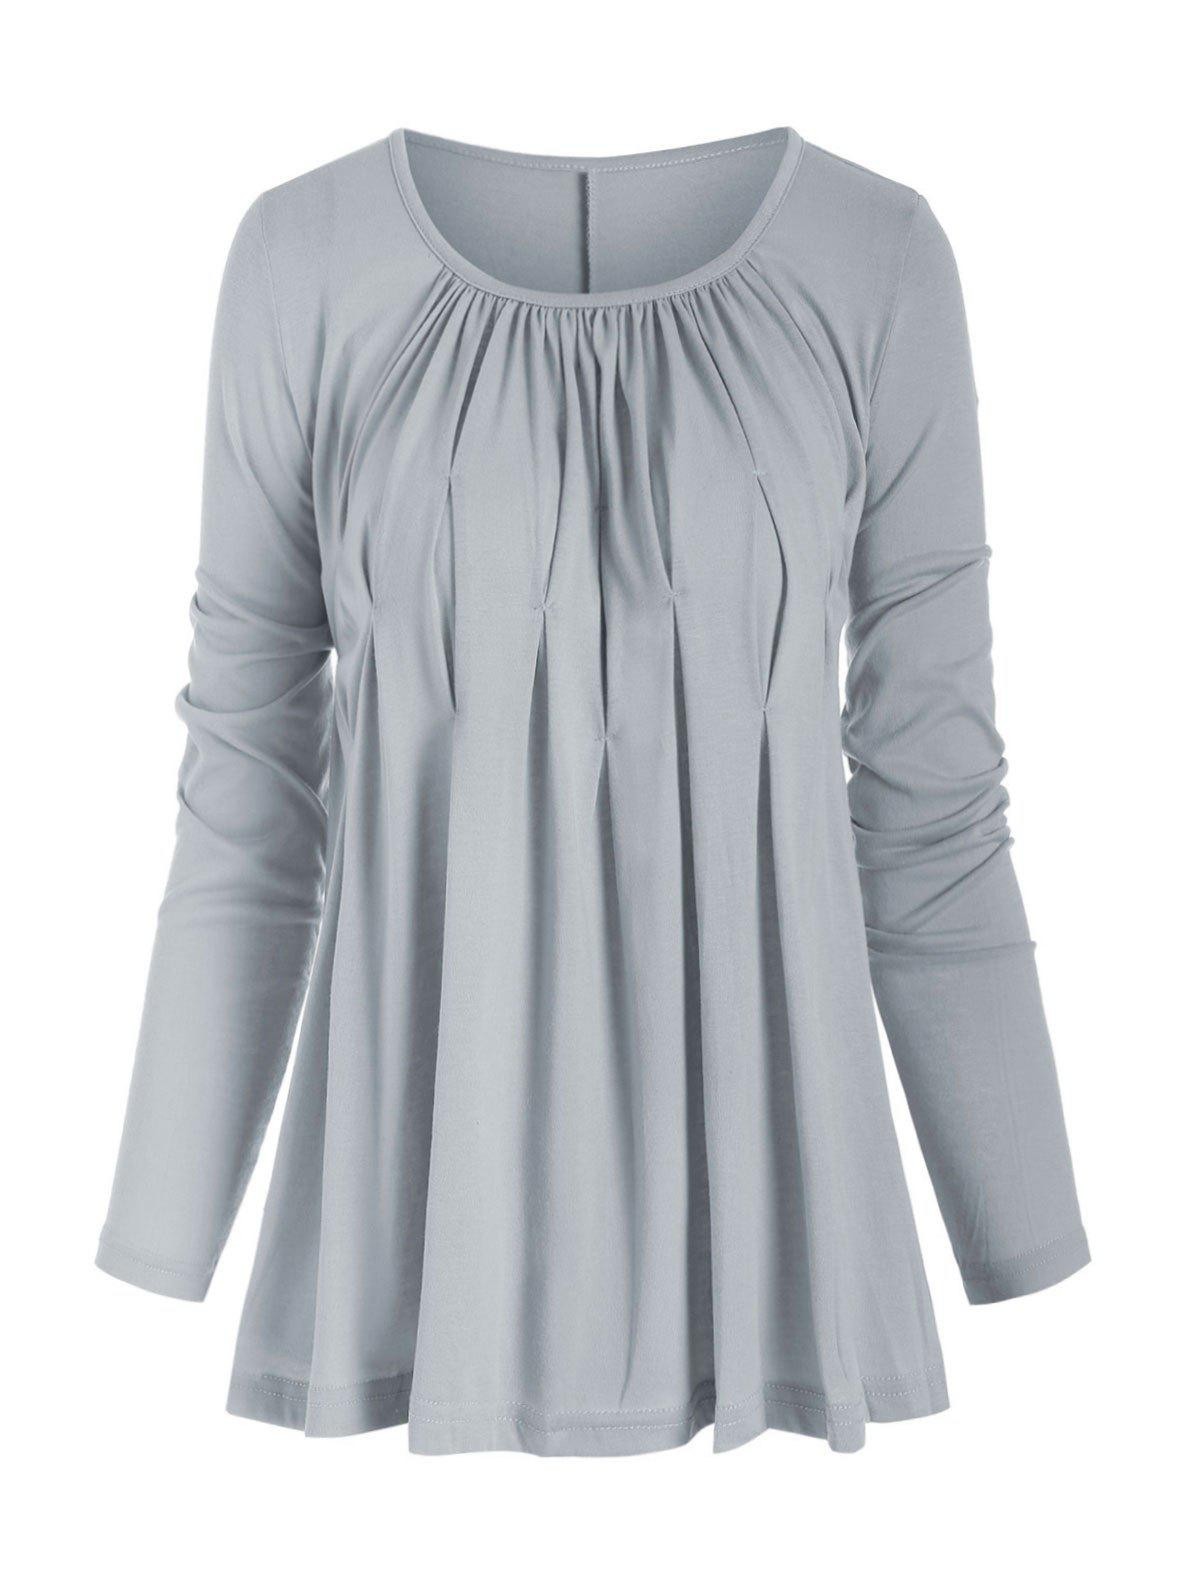 Ruched Solid Long Sleeves Tee - GRAY M